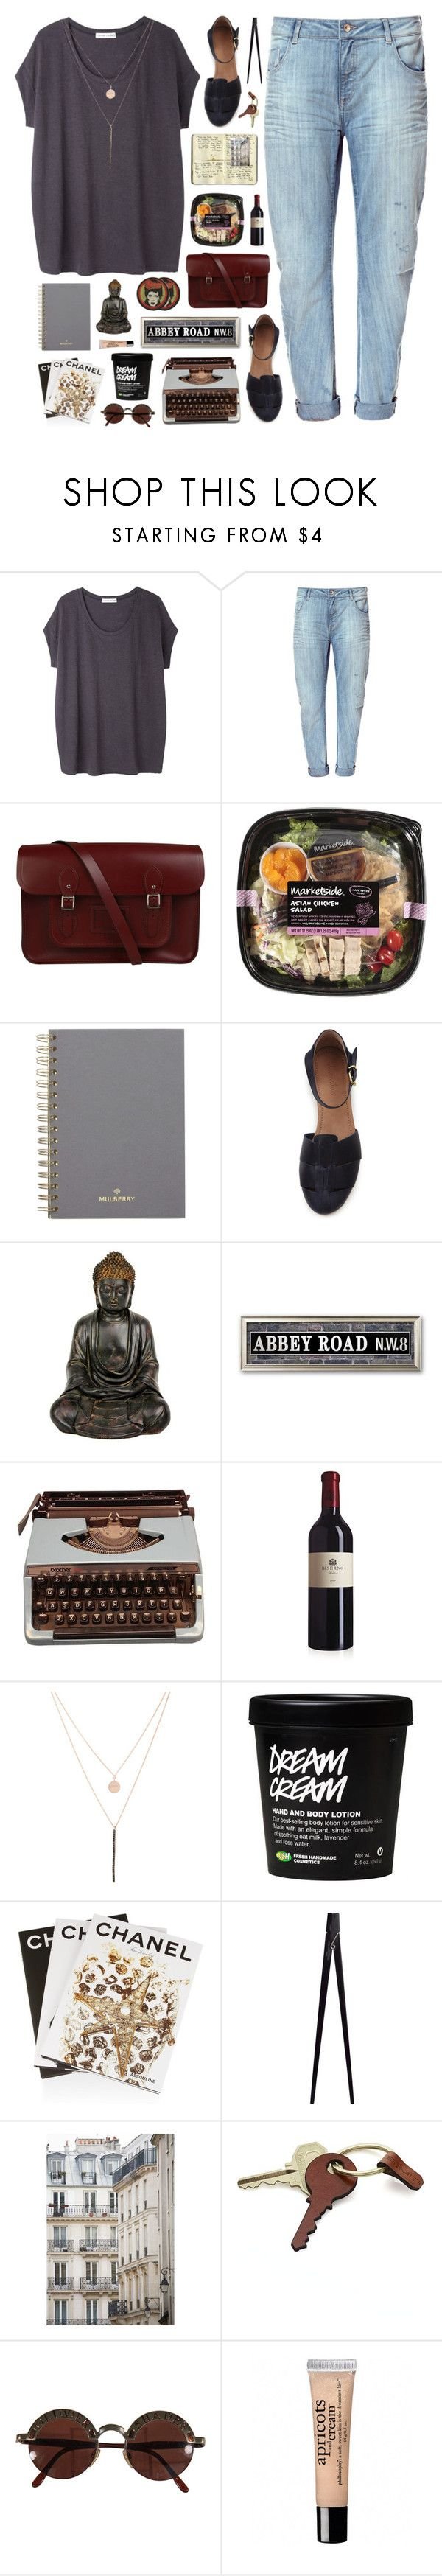 """""""nothing to it"""" by karm-a ❤ liked on Polyvore featuring Tsumori Chisato, Zara, The Cambridge Satchel Company, Moleskine, Mulberry, Steven Alan, Ali Moosally, Assouline Publishing, CB2 and Haussmann"""